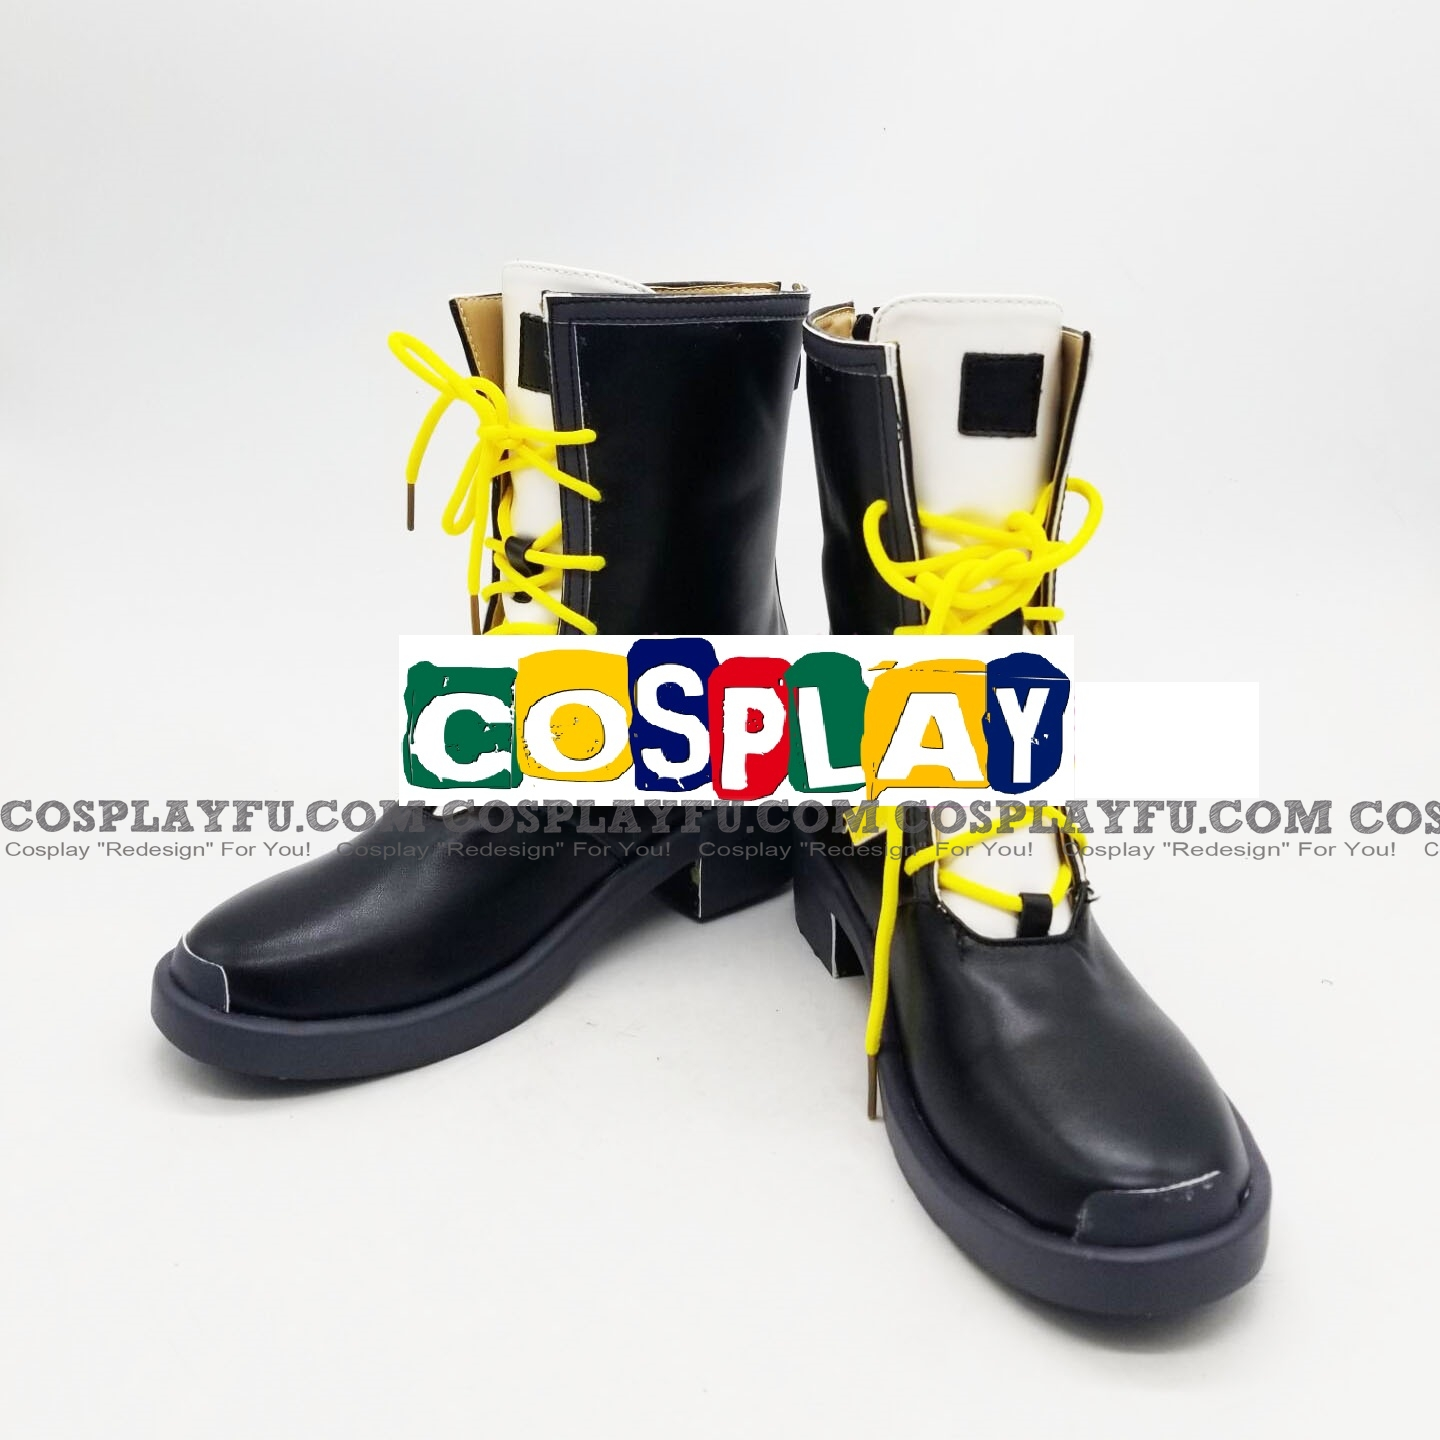 TAC-50 Shoes from Girls' Frontline